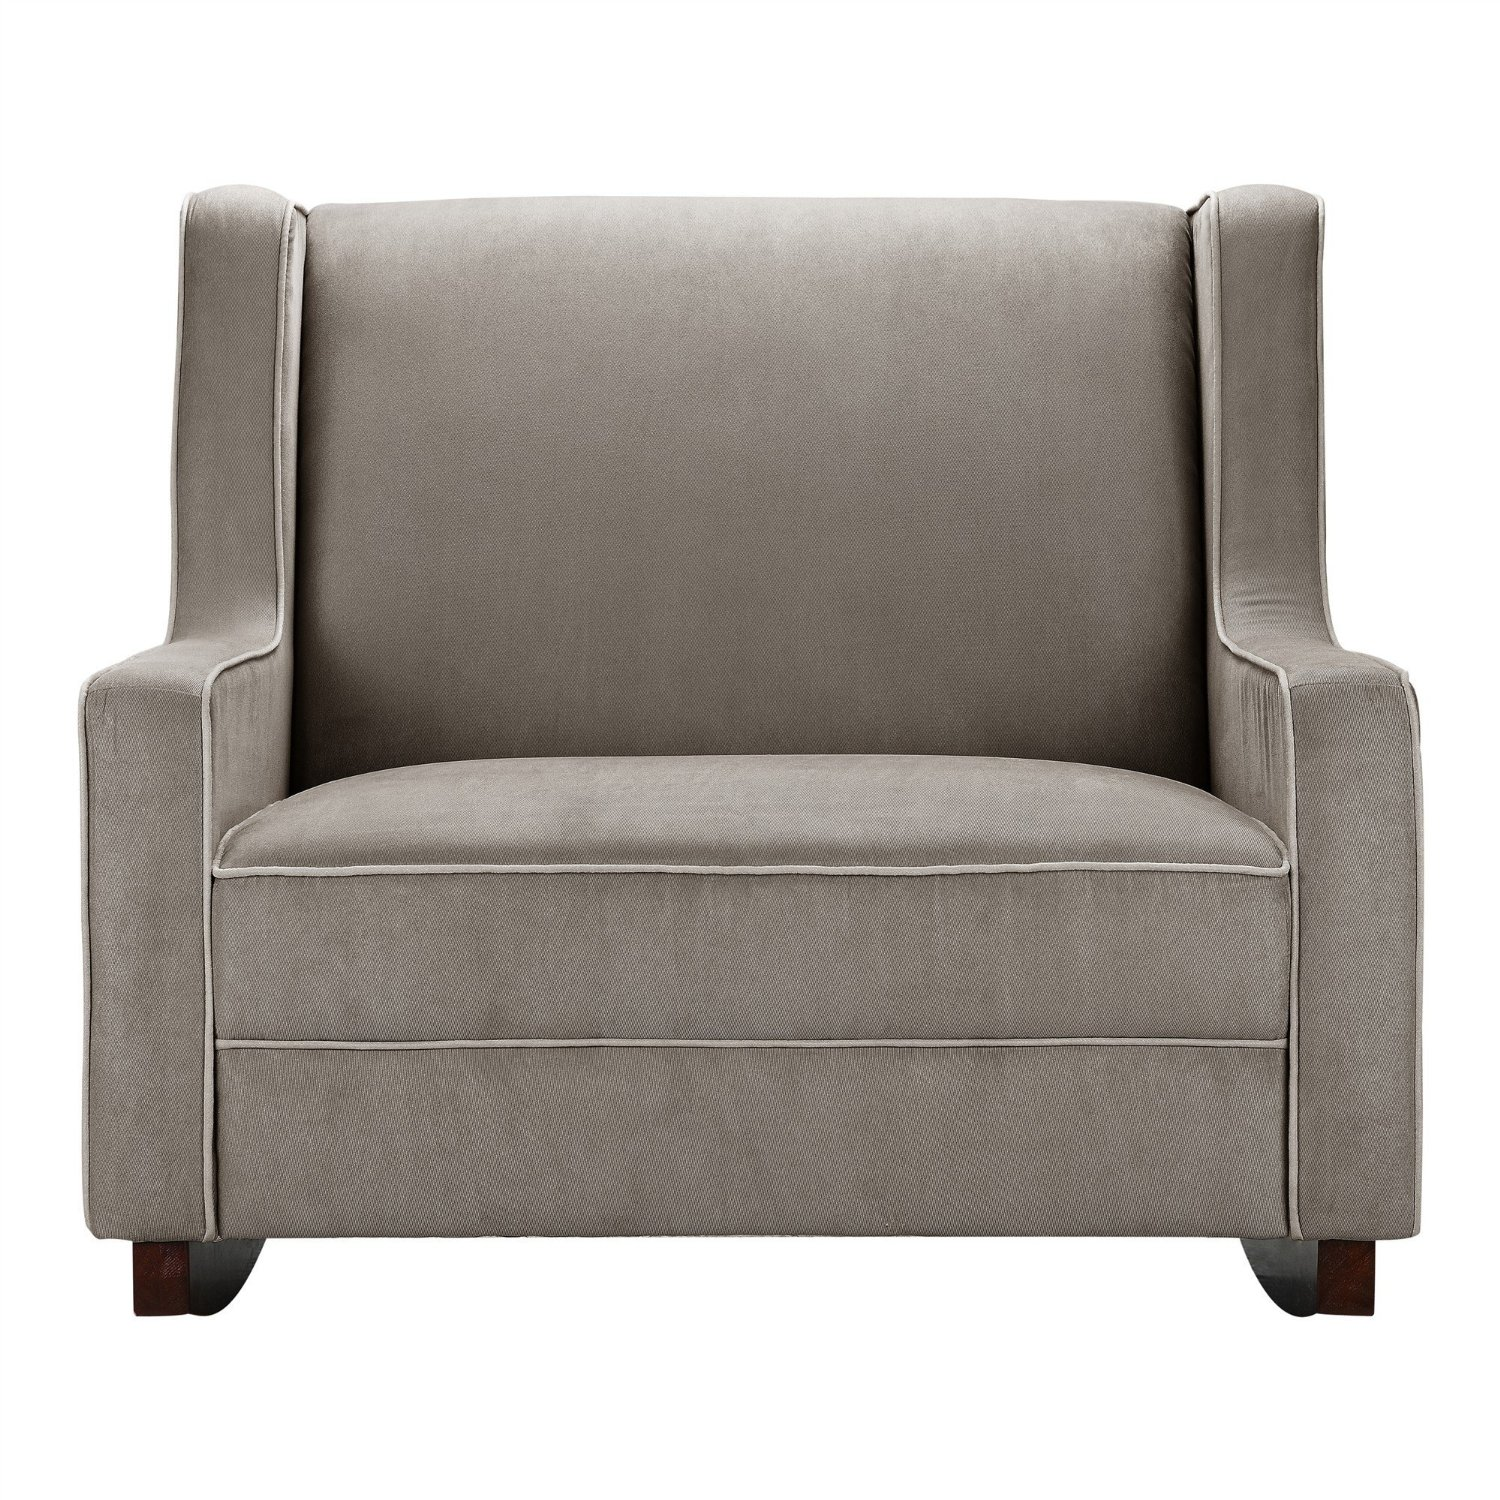 Baby Relax Double Rocker, Dark Taupe - $330.96